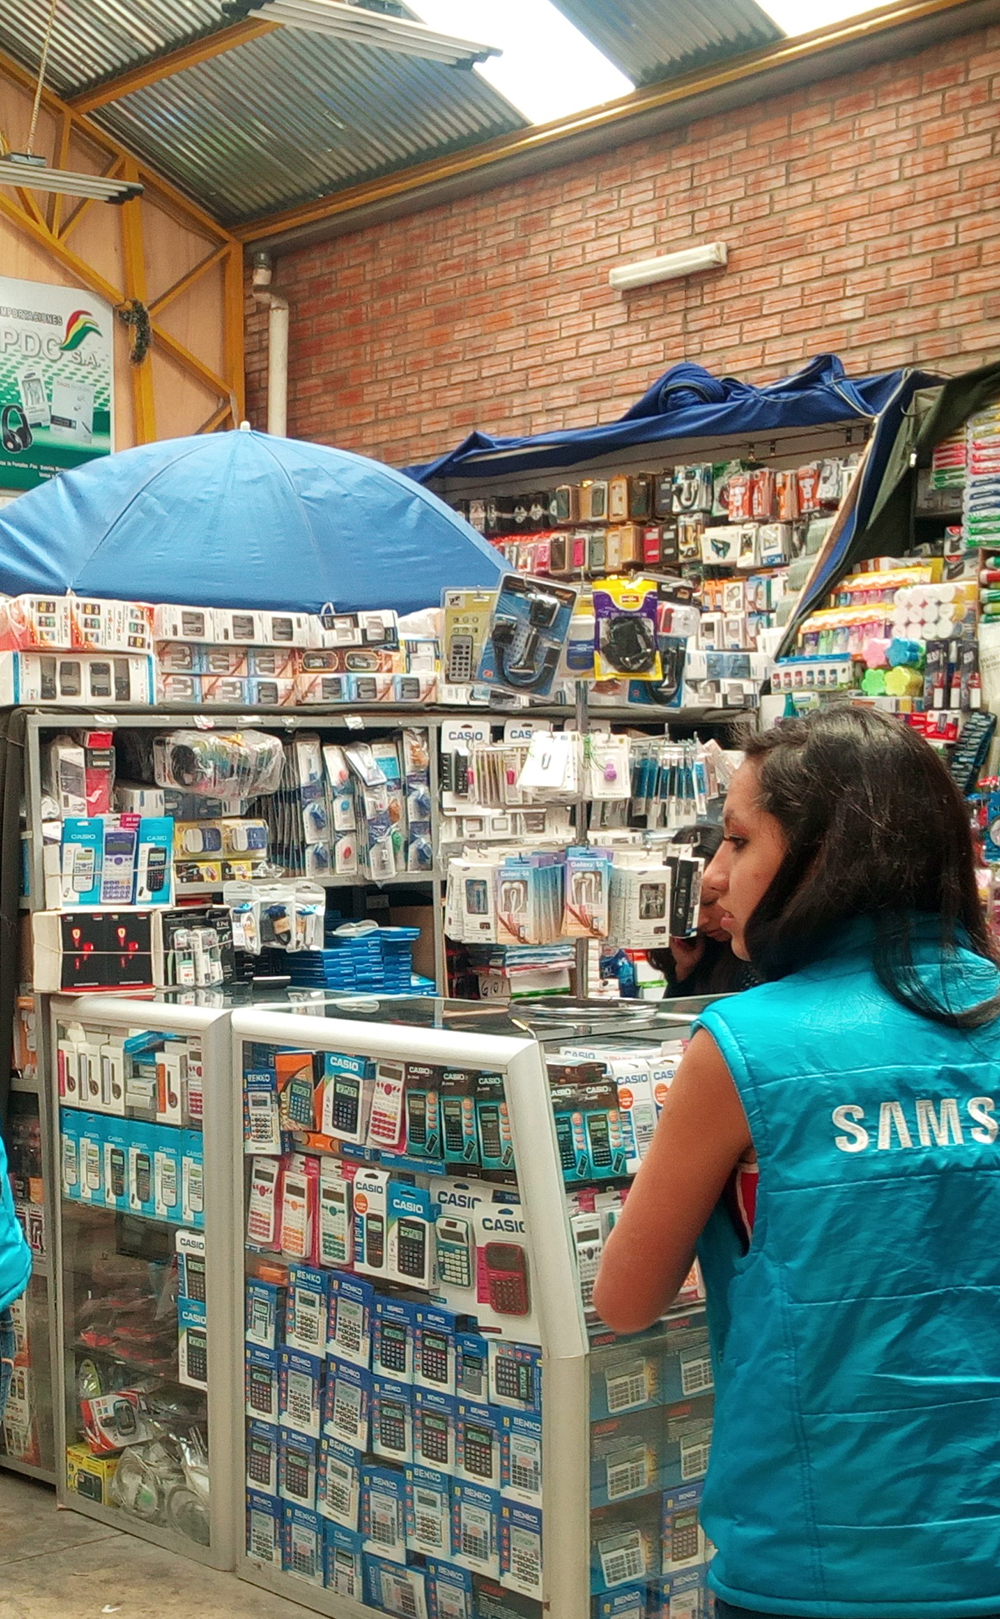 Samsung sales assistant at work in a covered market for mobile phones, gadgets, and small electronic products in La Paz. Photo by Juliane Müller.